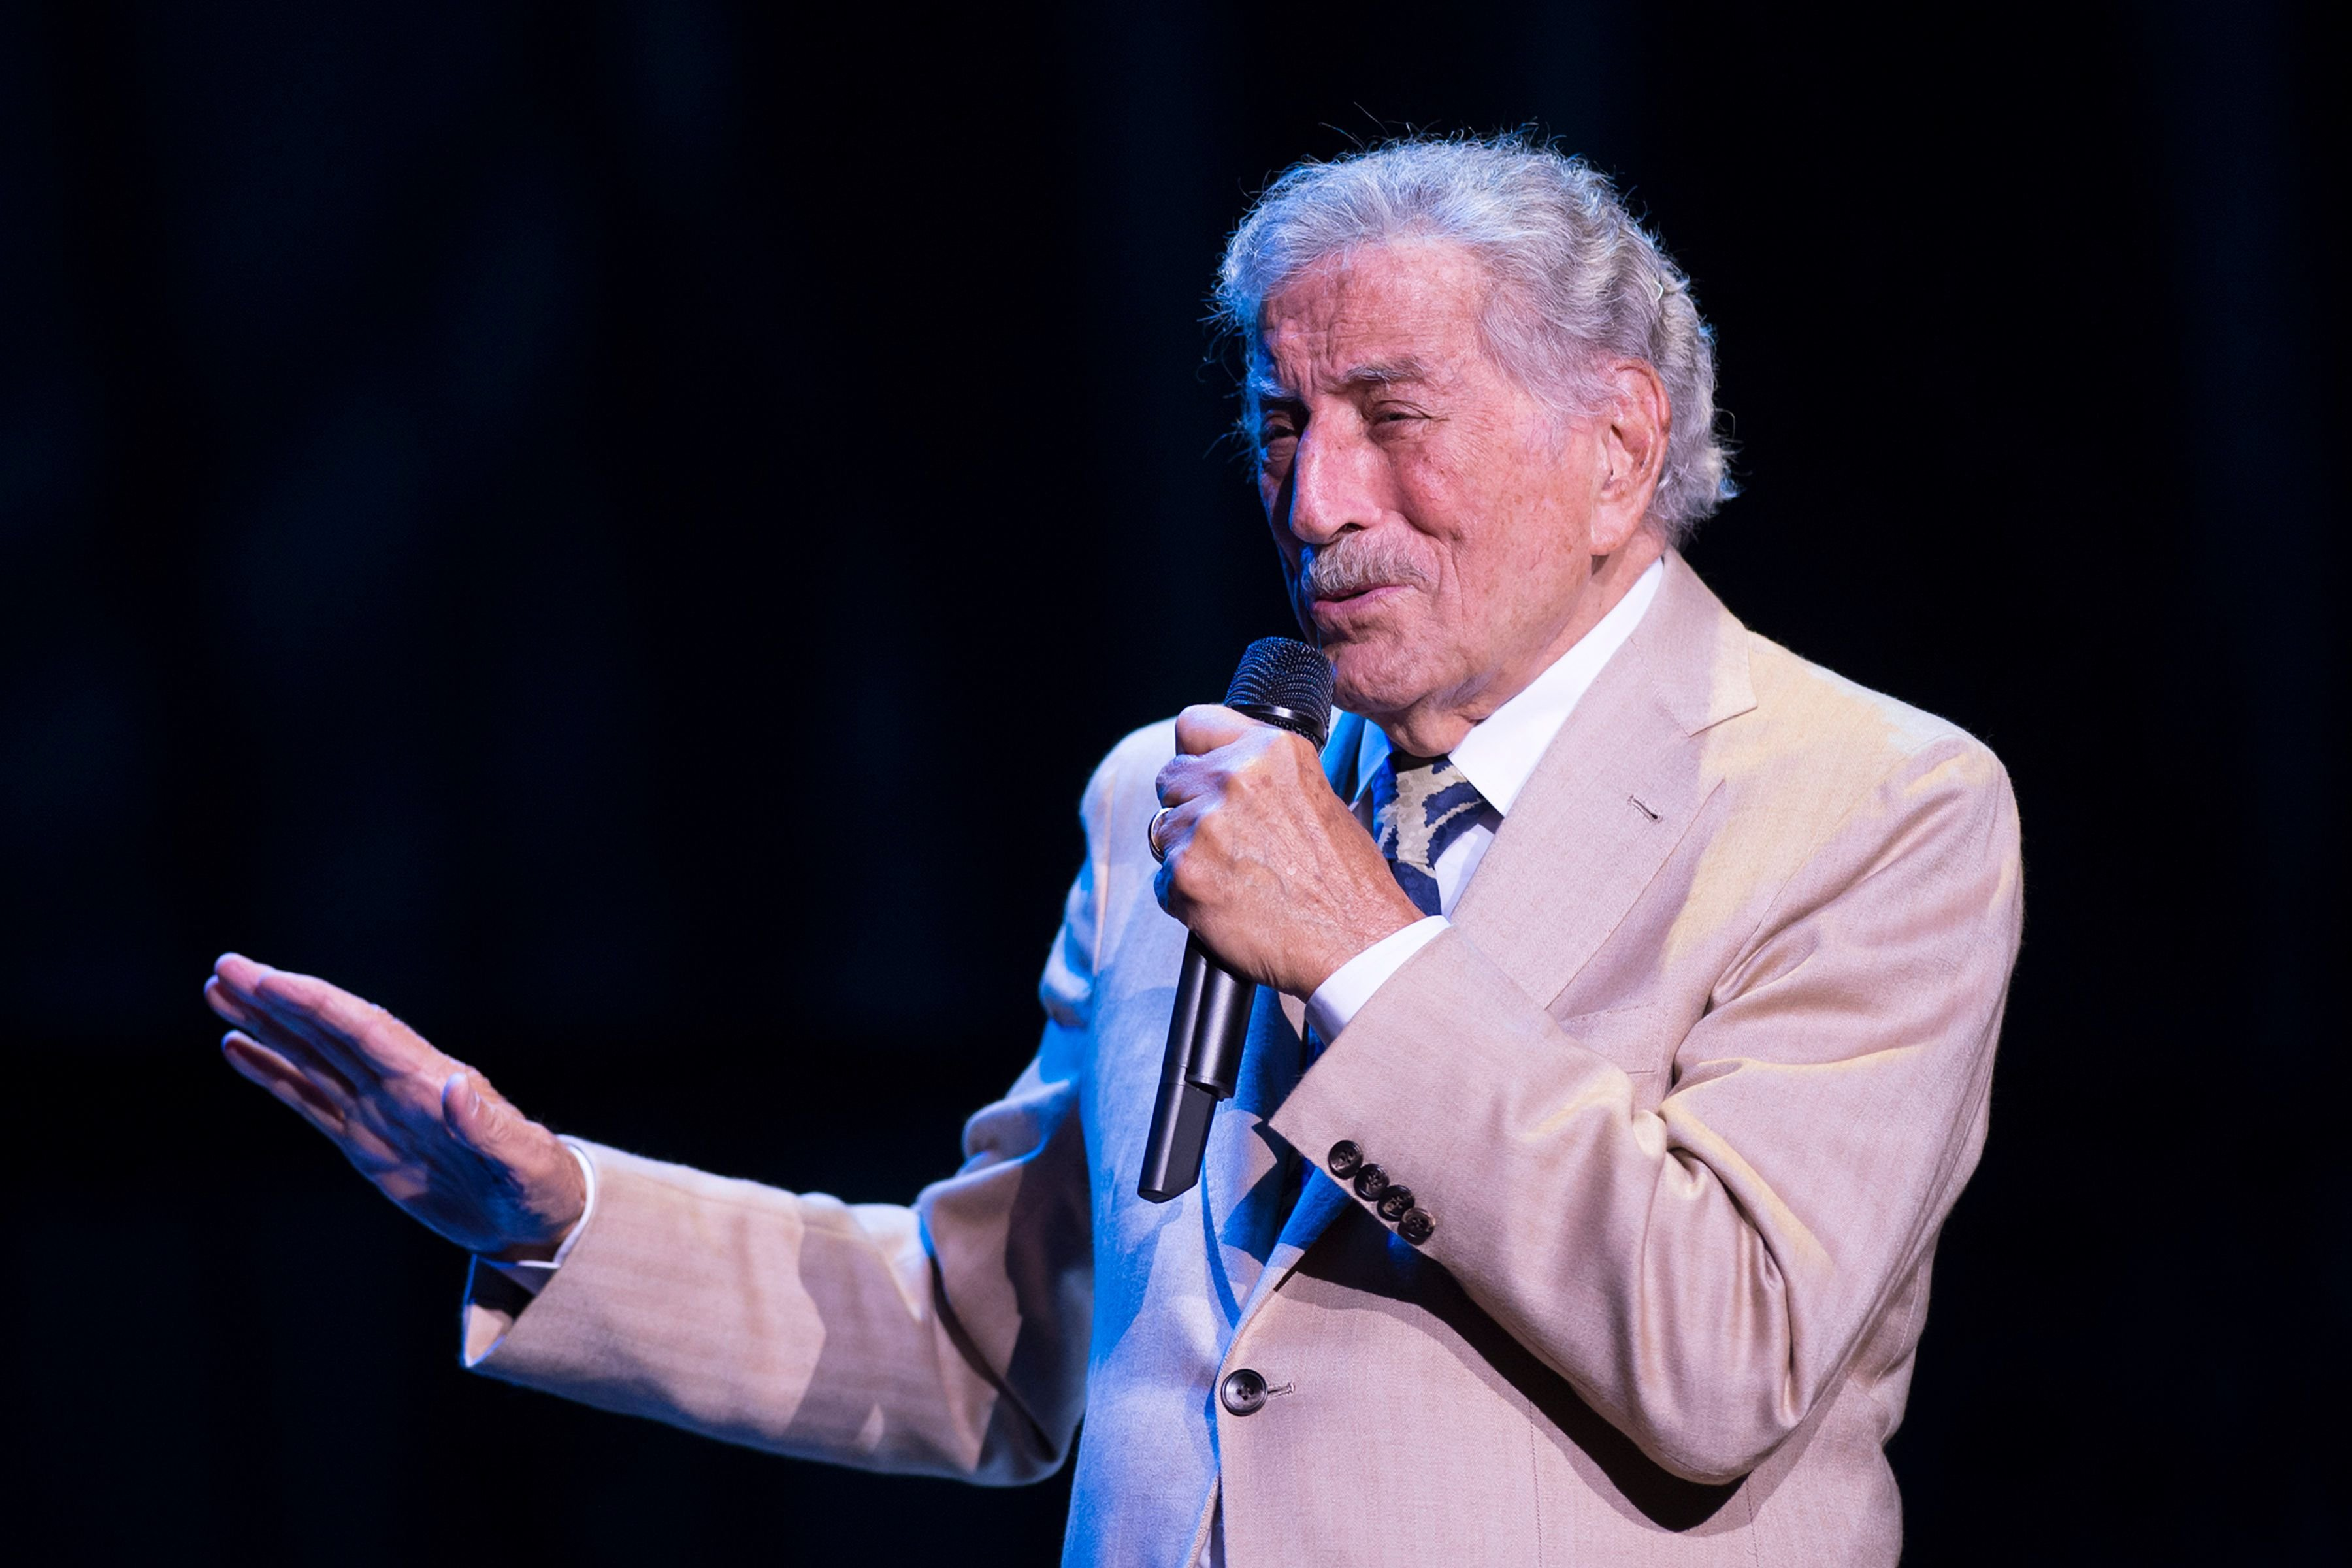 Tony Bennett performs on stage at Royal Albert Hall on June 28, 2019 in London, England. | Photo: Getty Images